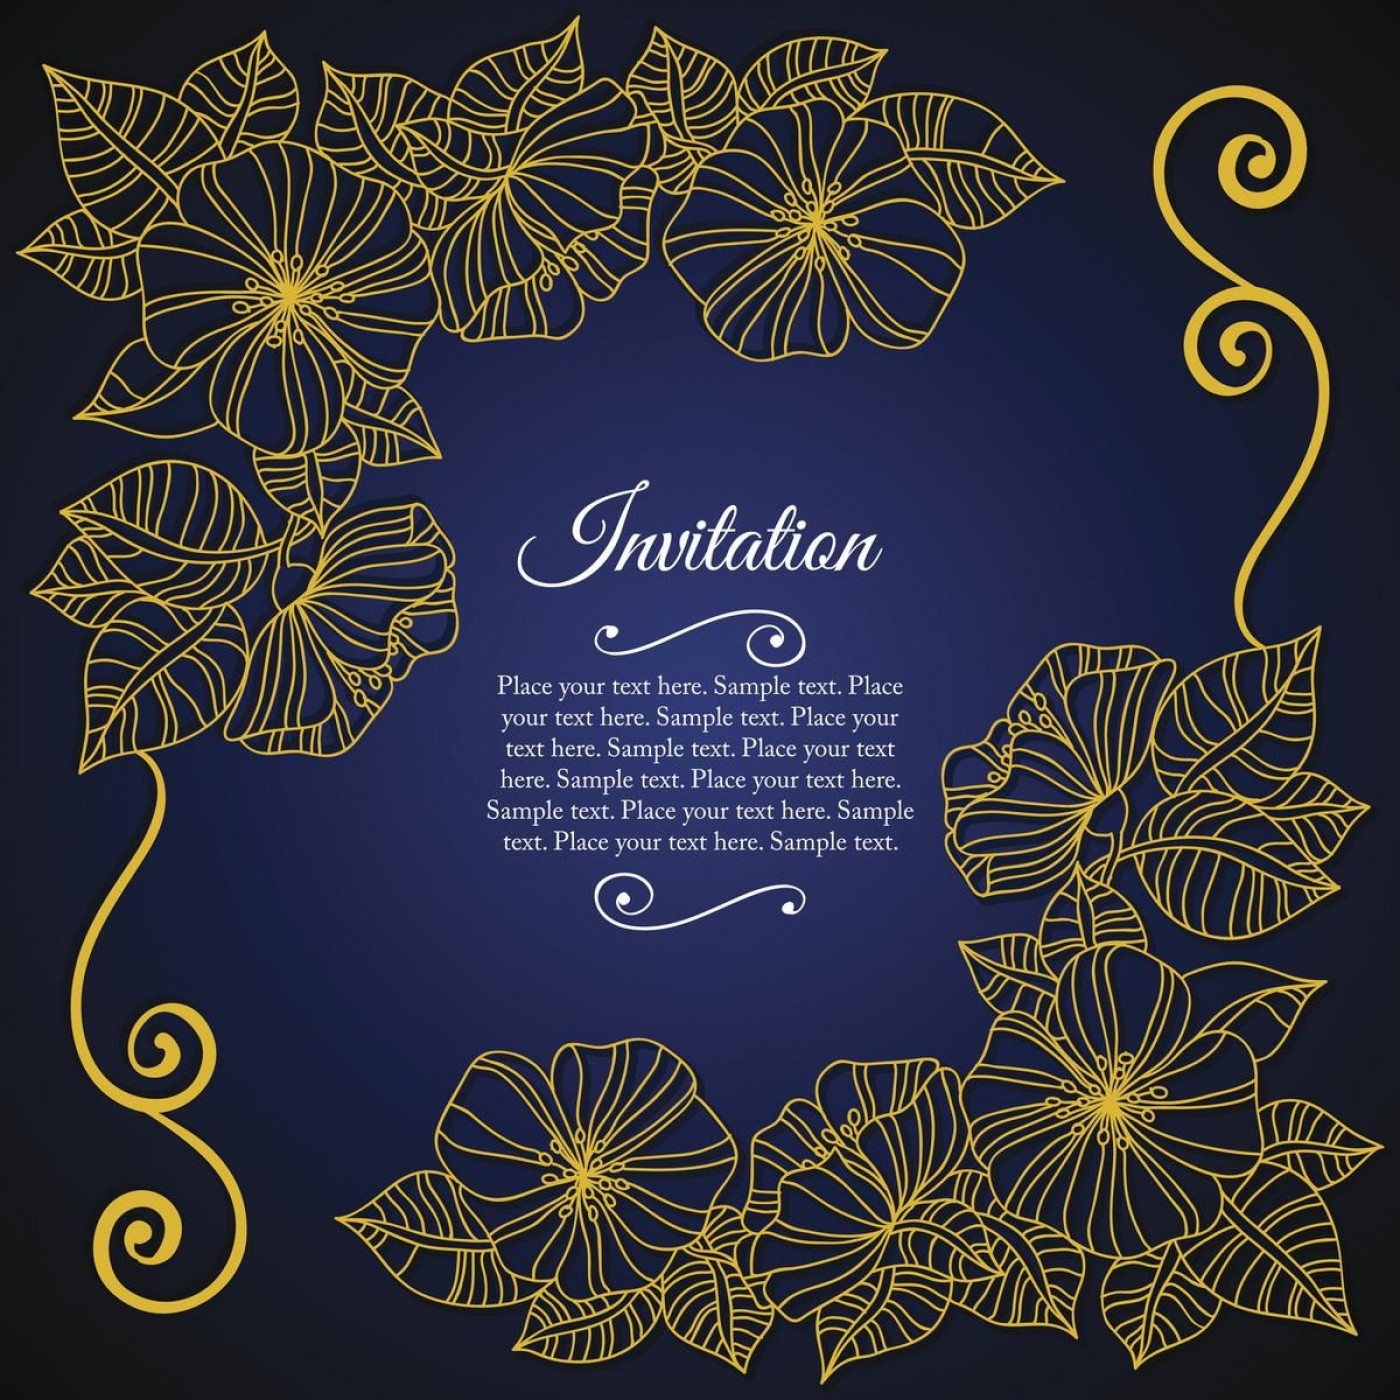 003 Staggering 50th Anniversary Invitation Wording Sample Concept  Wedding 60th In Tamil Birthday1400